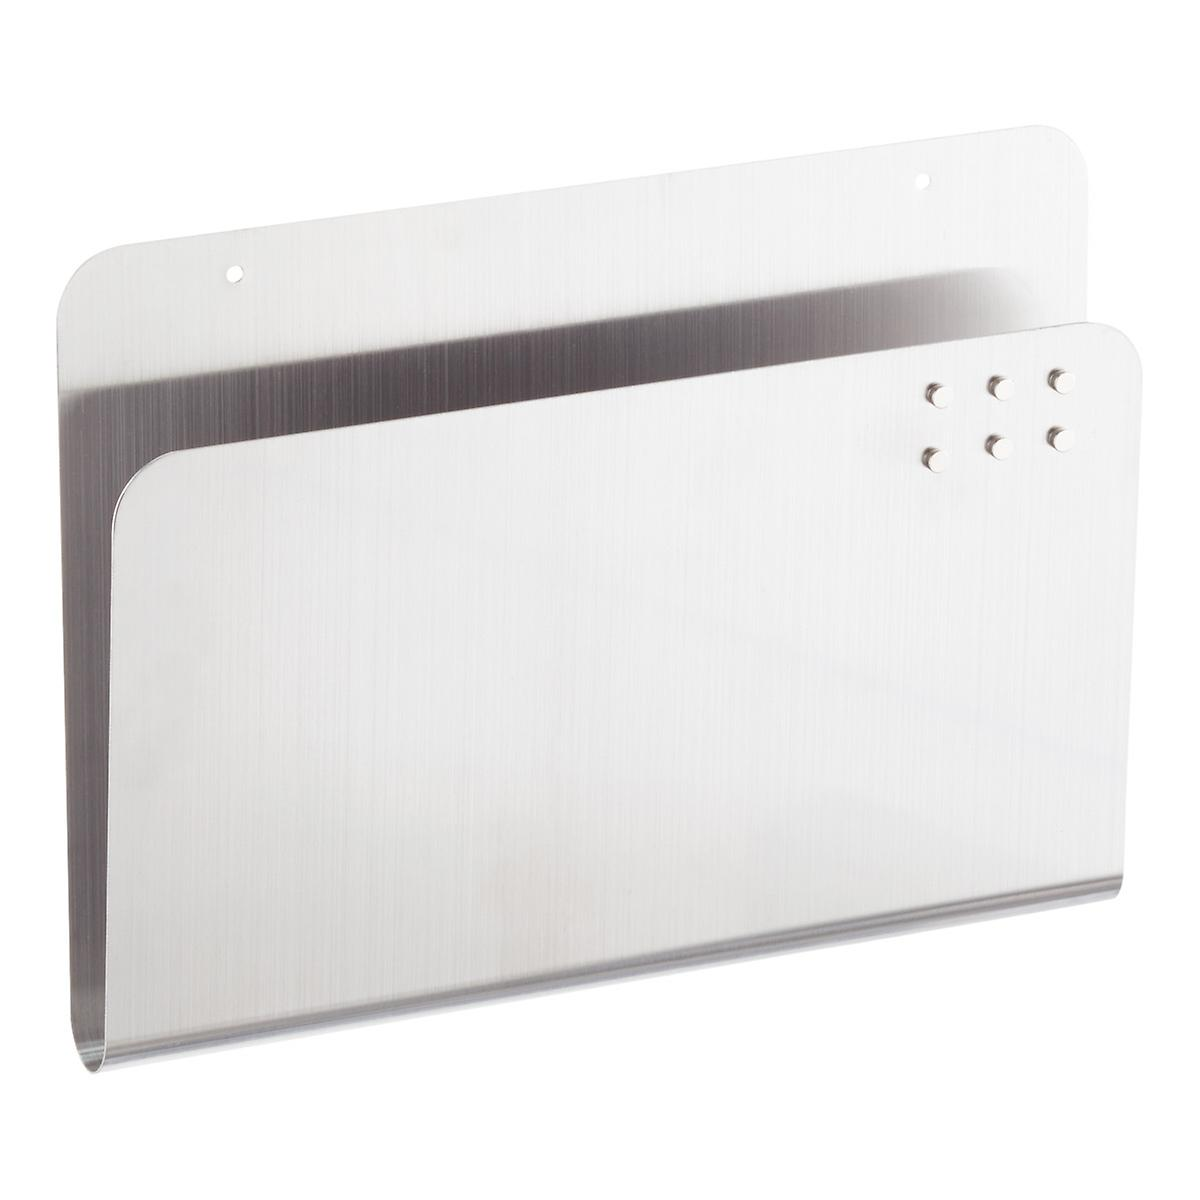 Three by Three Stainless Steel Magnetic Wall Pocket | The Container ...